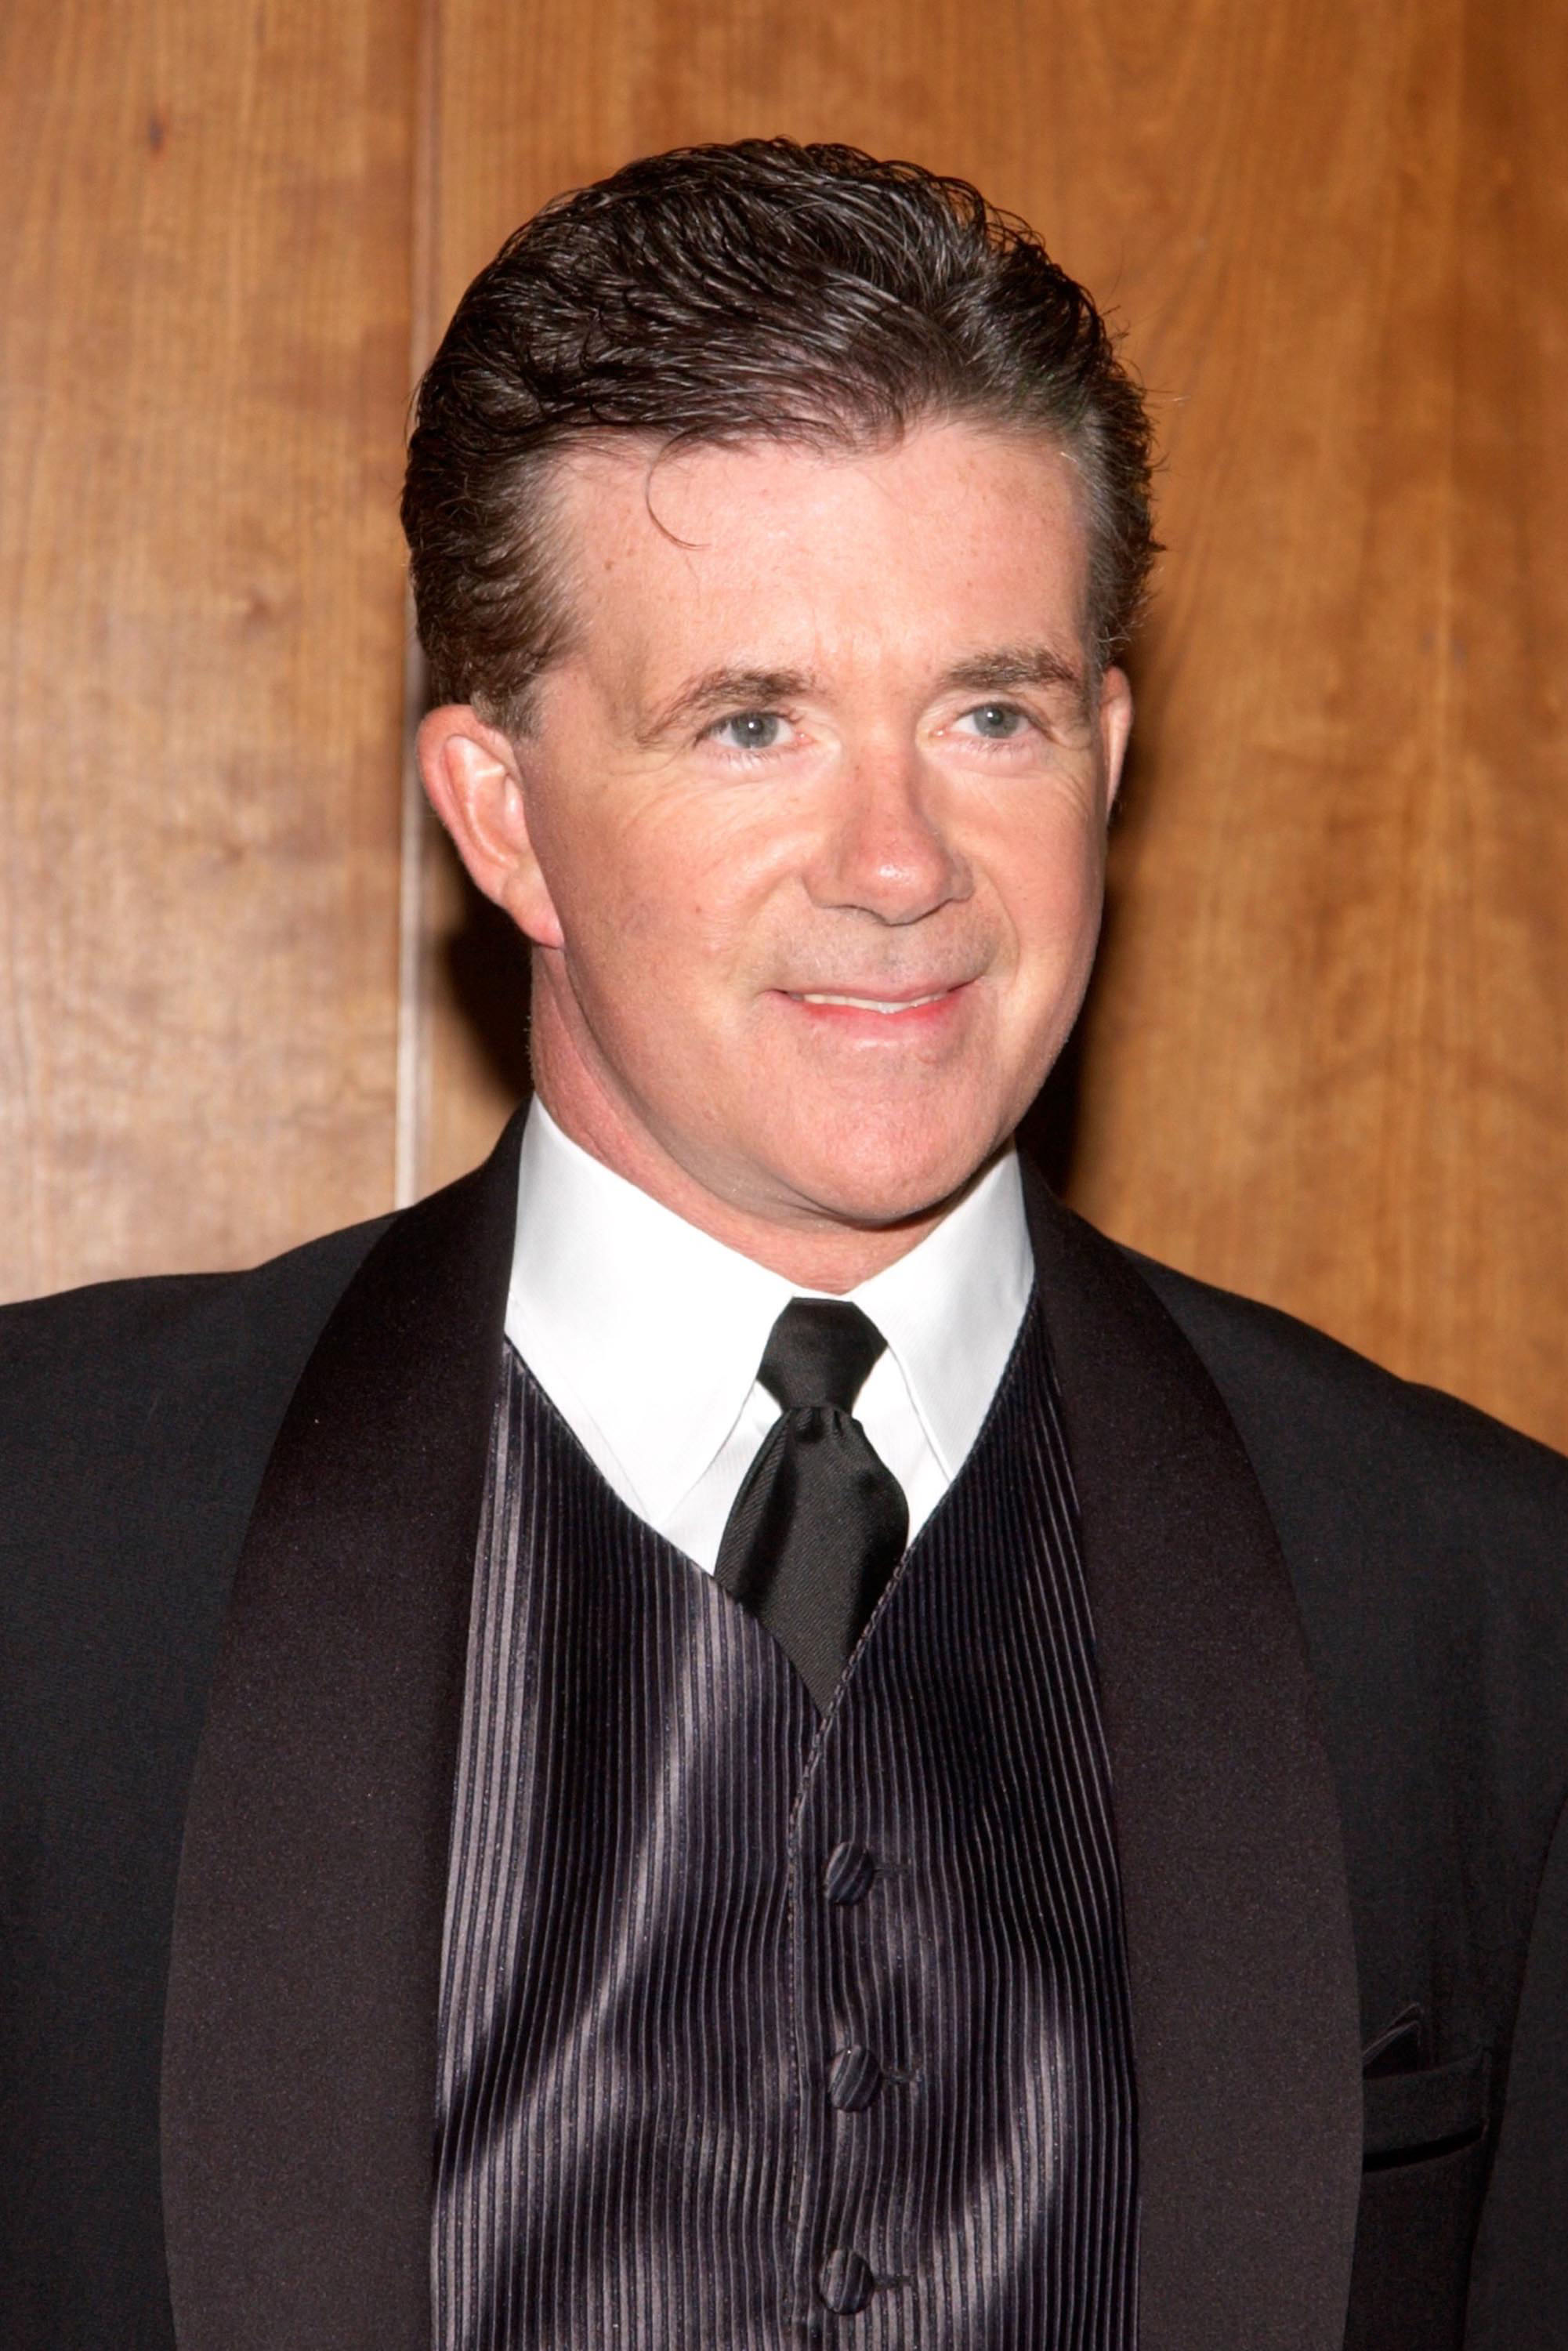 Alan Thicke arrives at the Heroes in Uniforms Charity Hockey Tournament and Gala March 22, 2002 in New York City | Photo: GettyImages